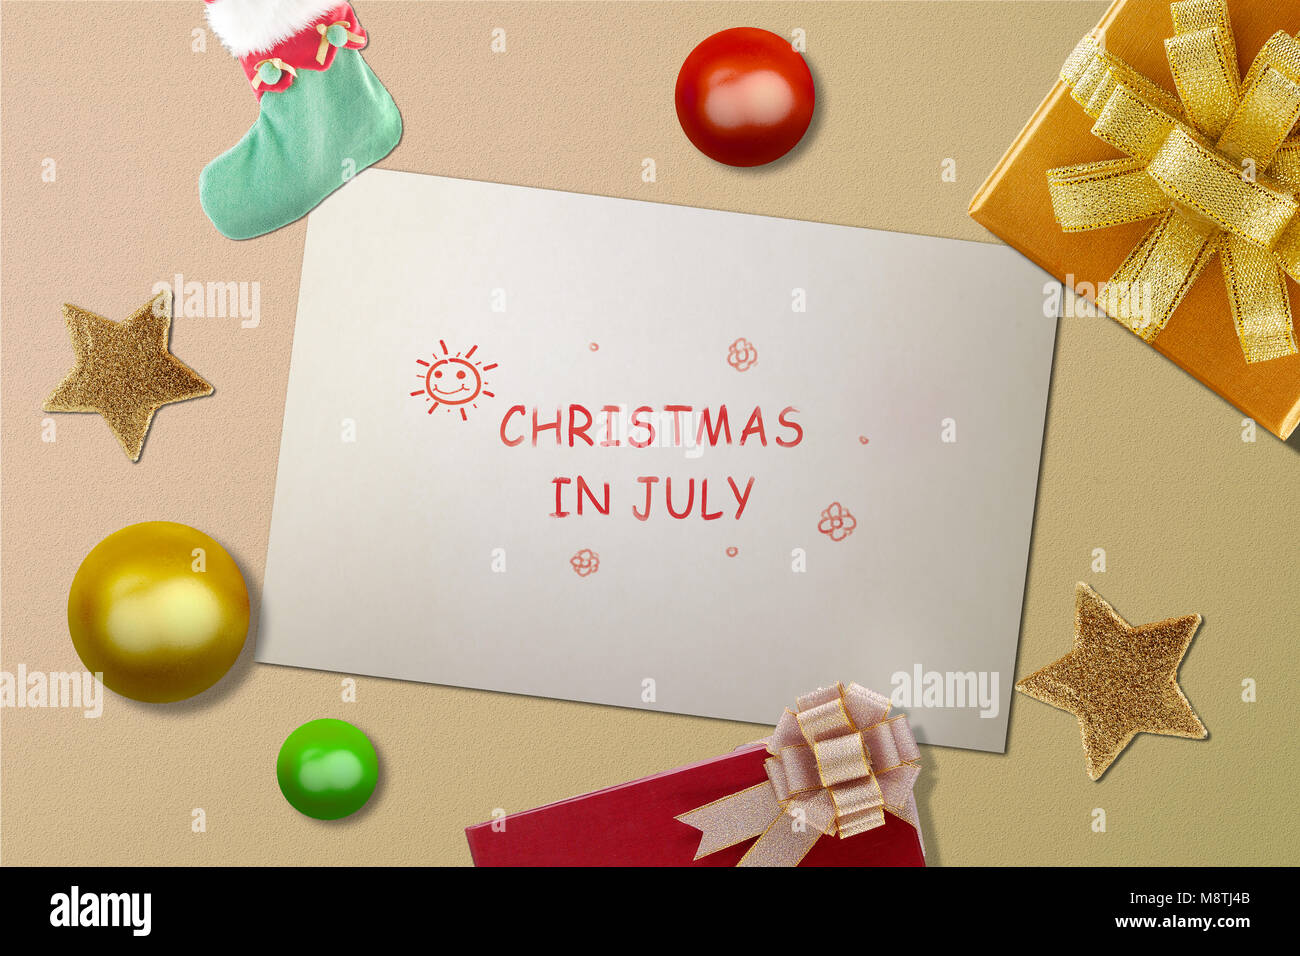 Christmas In July Background Images.White Paper With Text Christmas In July With Christmas